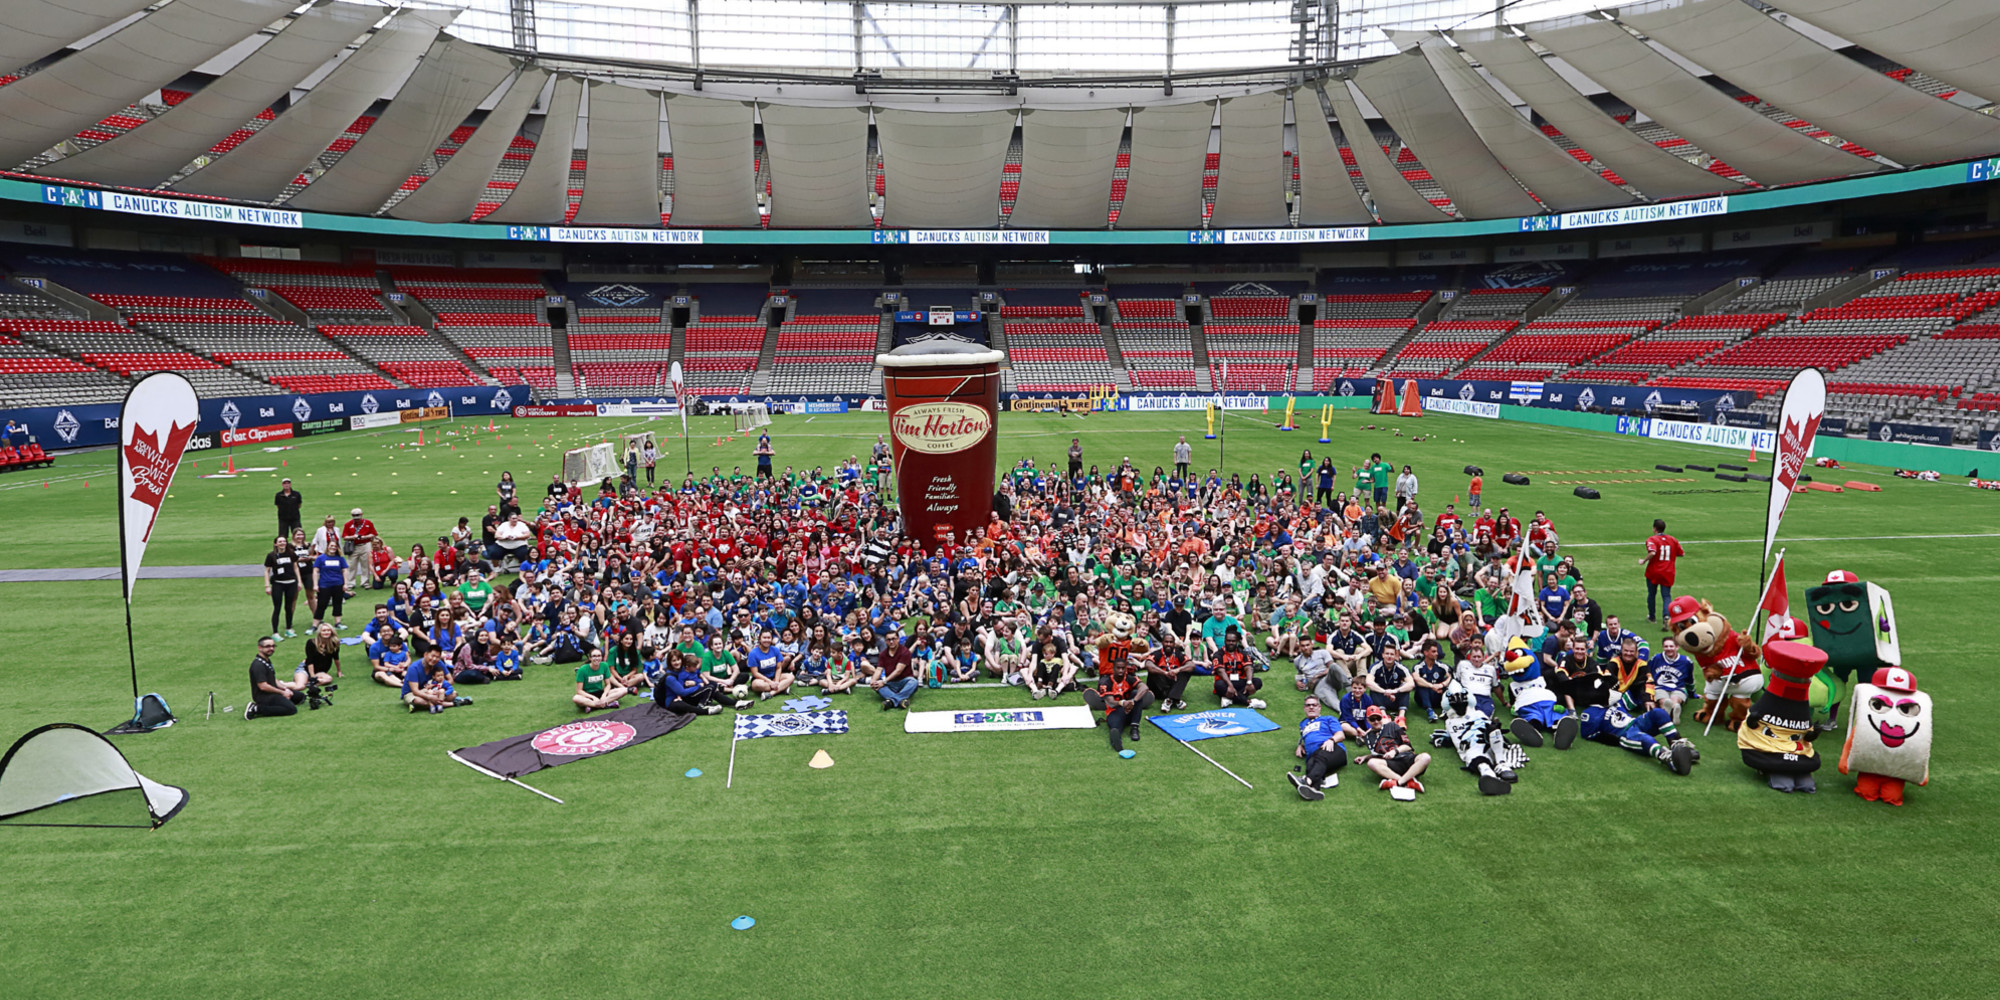 A group of 300+ families, staff, volunteers and professional athletes pose for a photo on-field at a sports stadium.